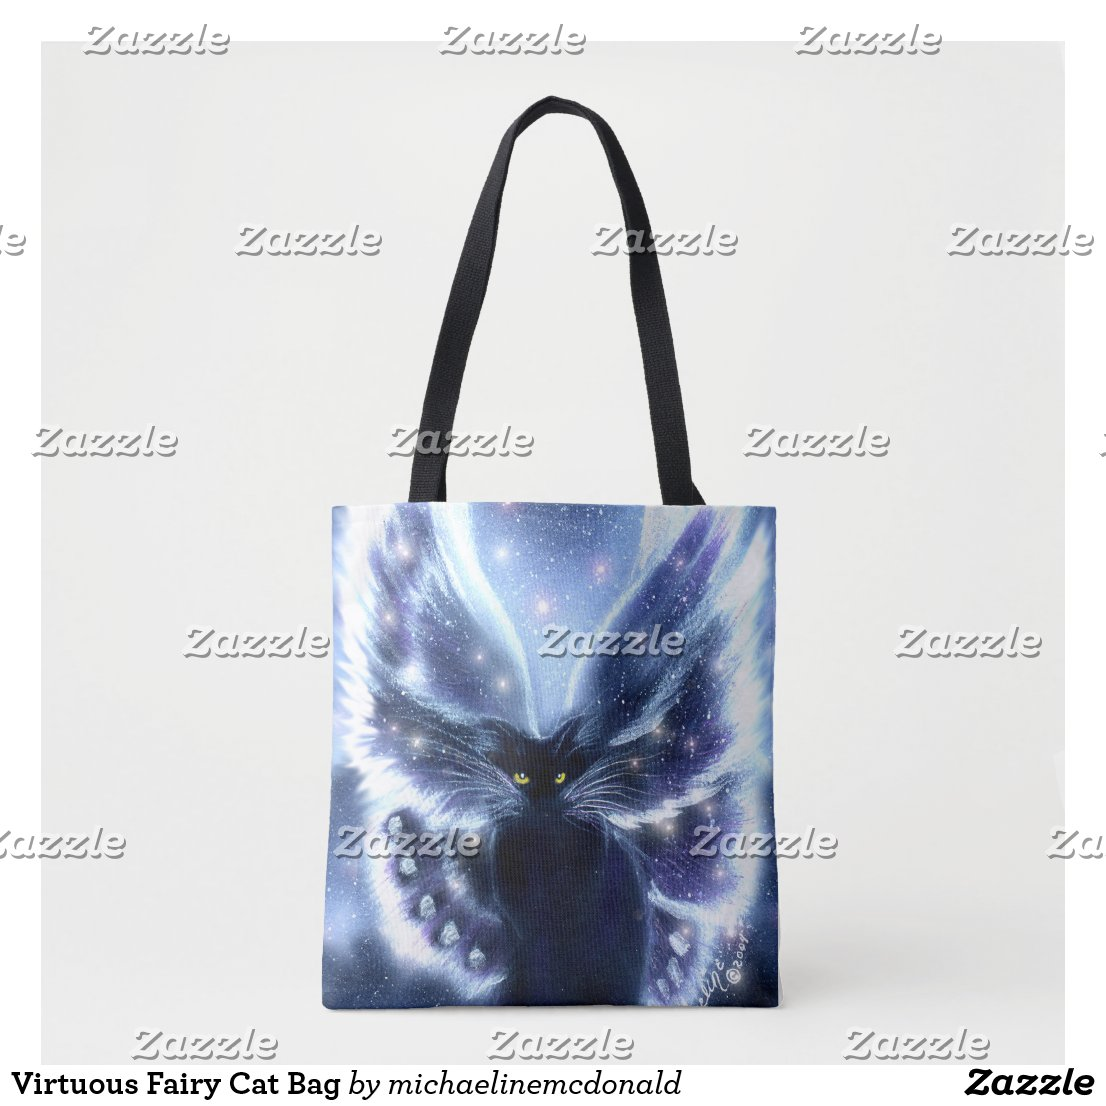 Virtuous Fairy Cat Bag